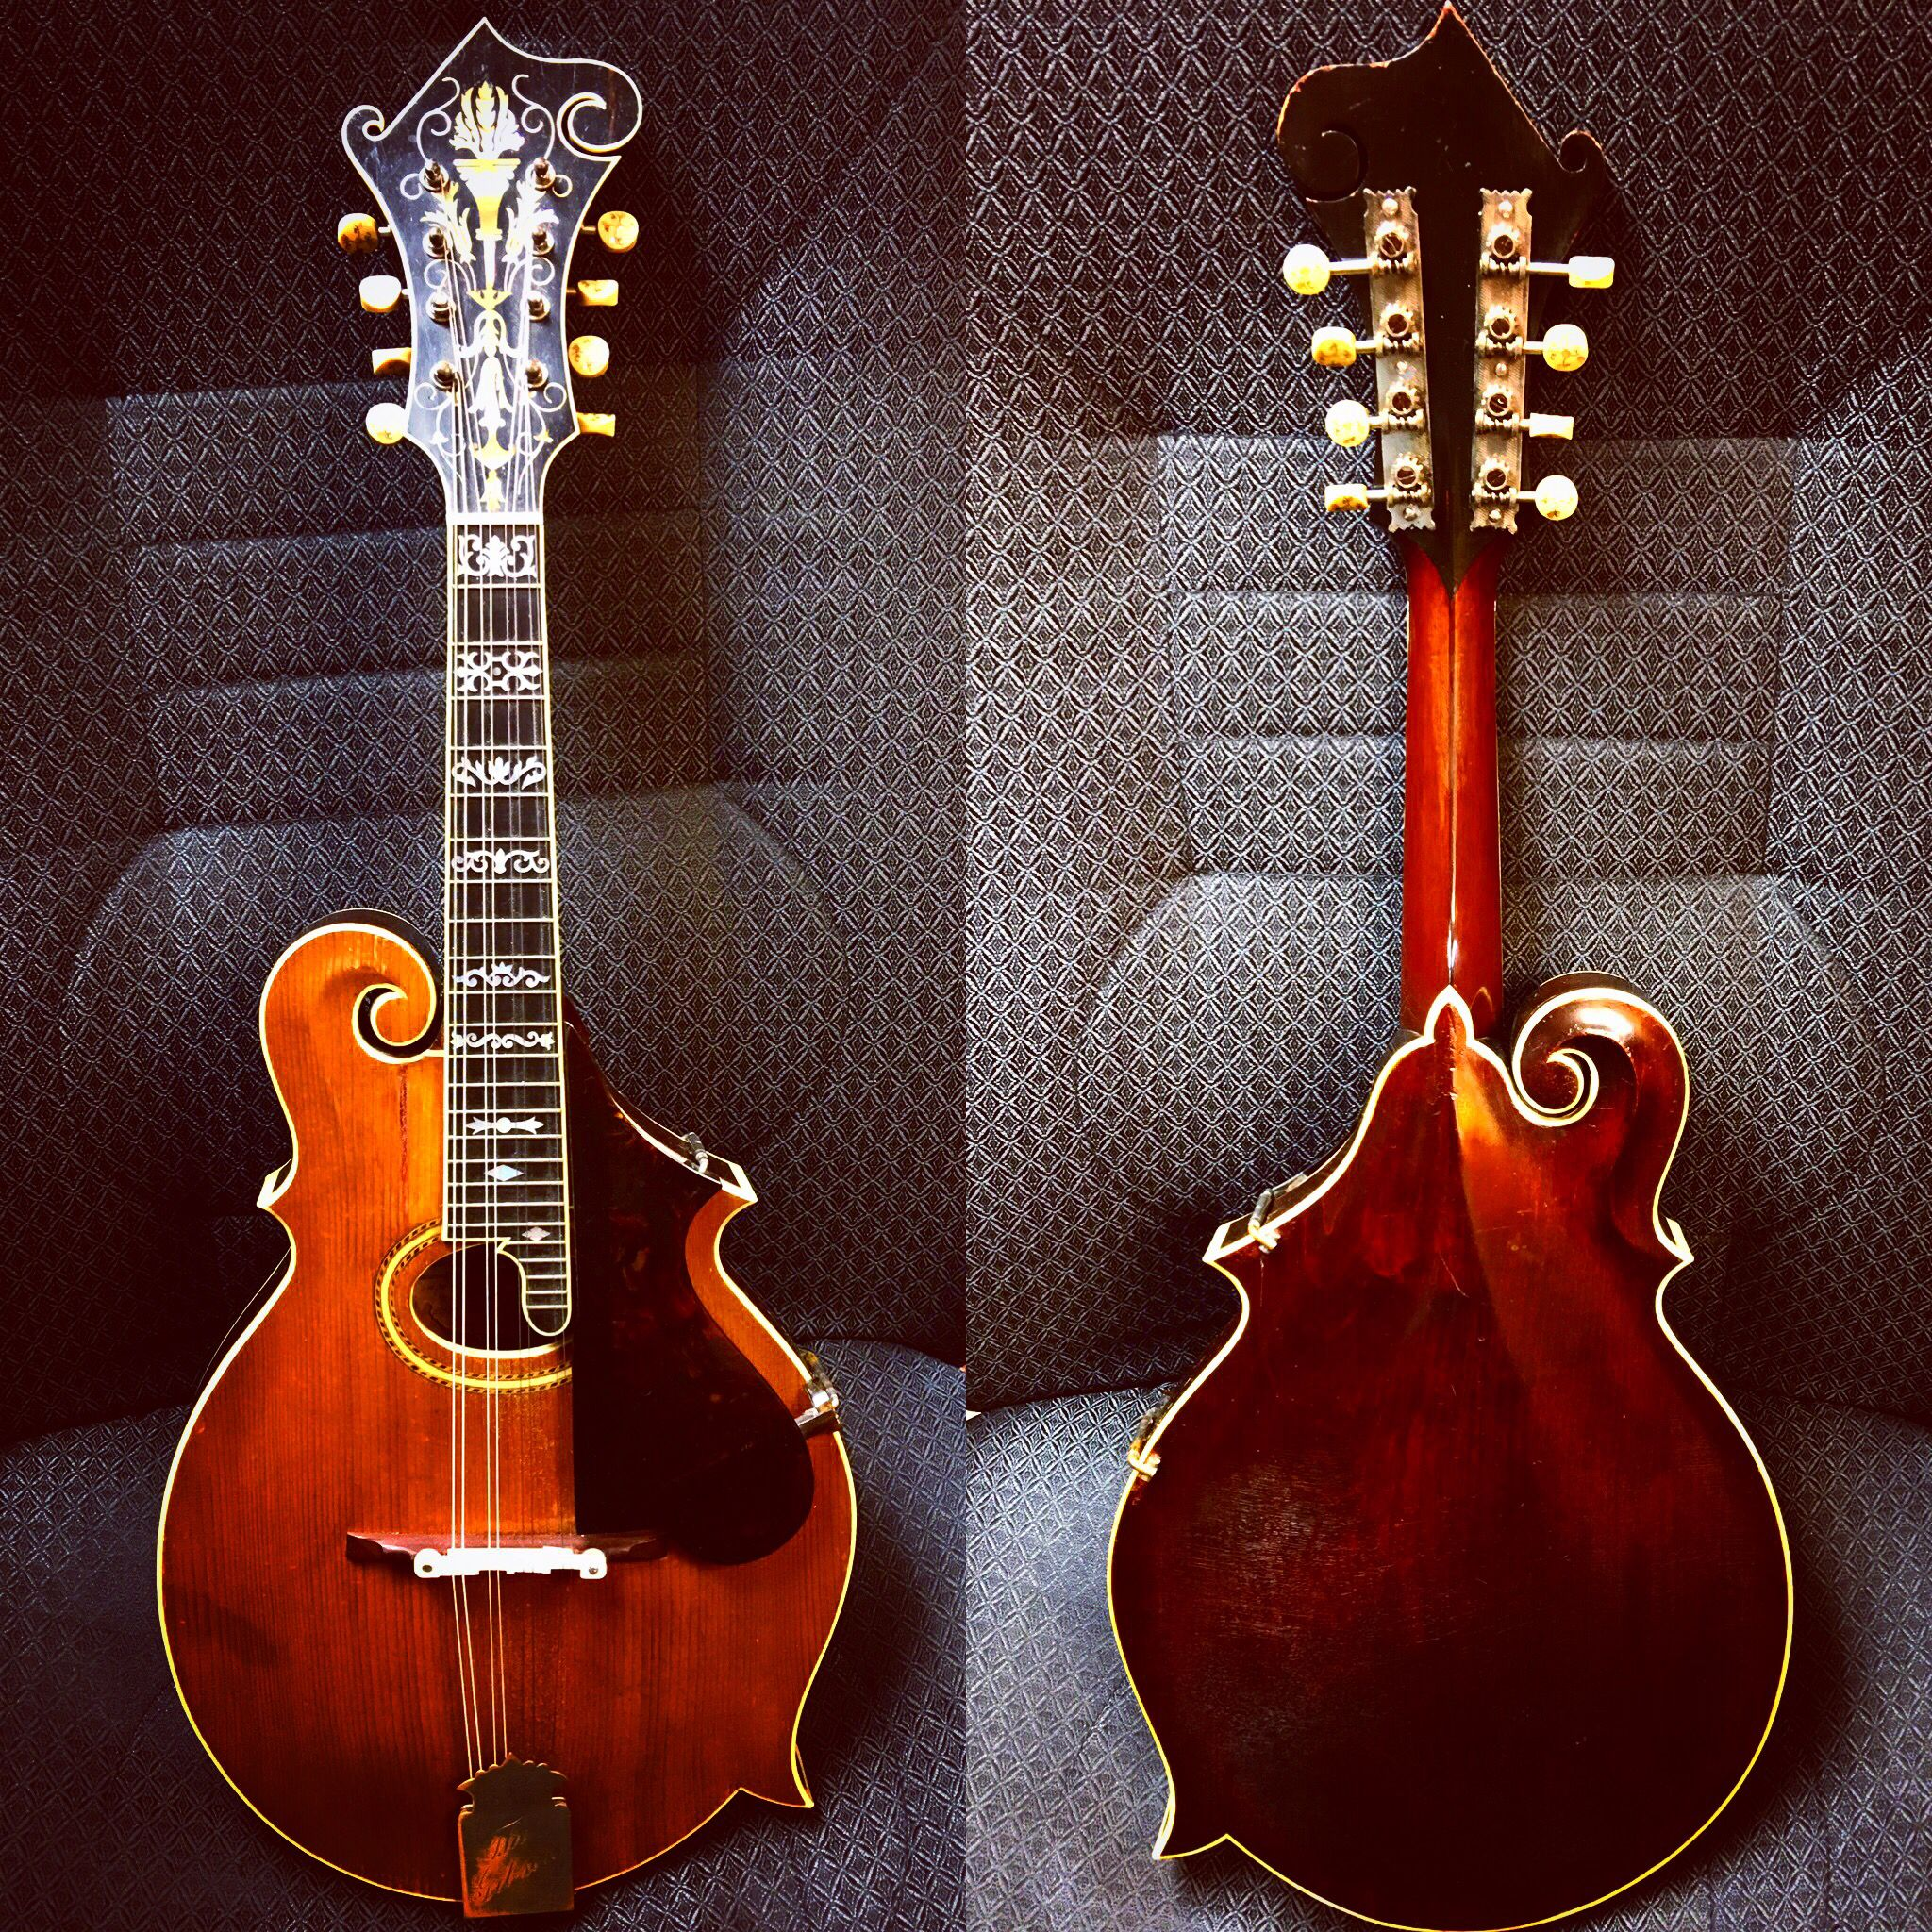 1909 gibson f4 mandolin torch and wire inlay on peghead artist model banjo style inlay. Black Bedroom Furniture Sets. Home Design Ideas